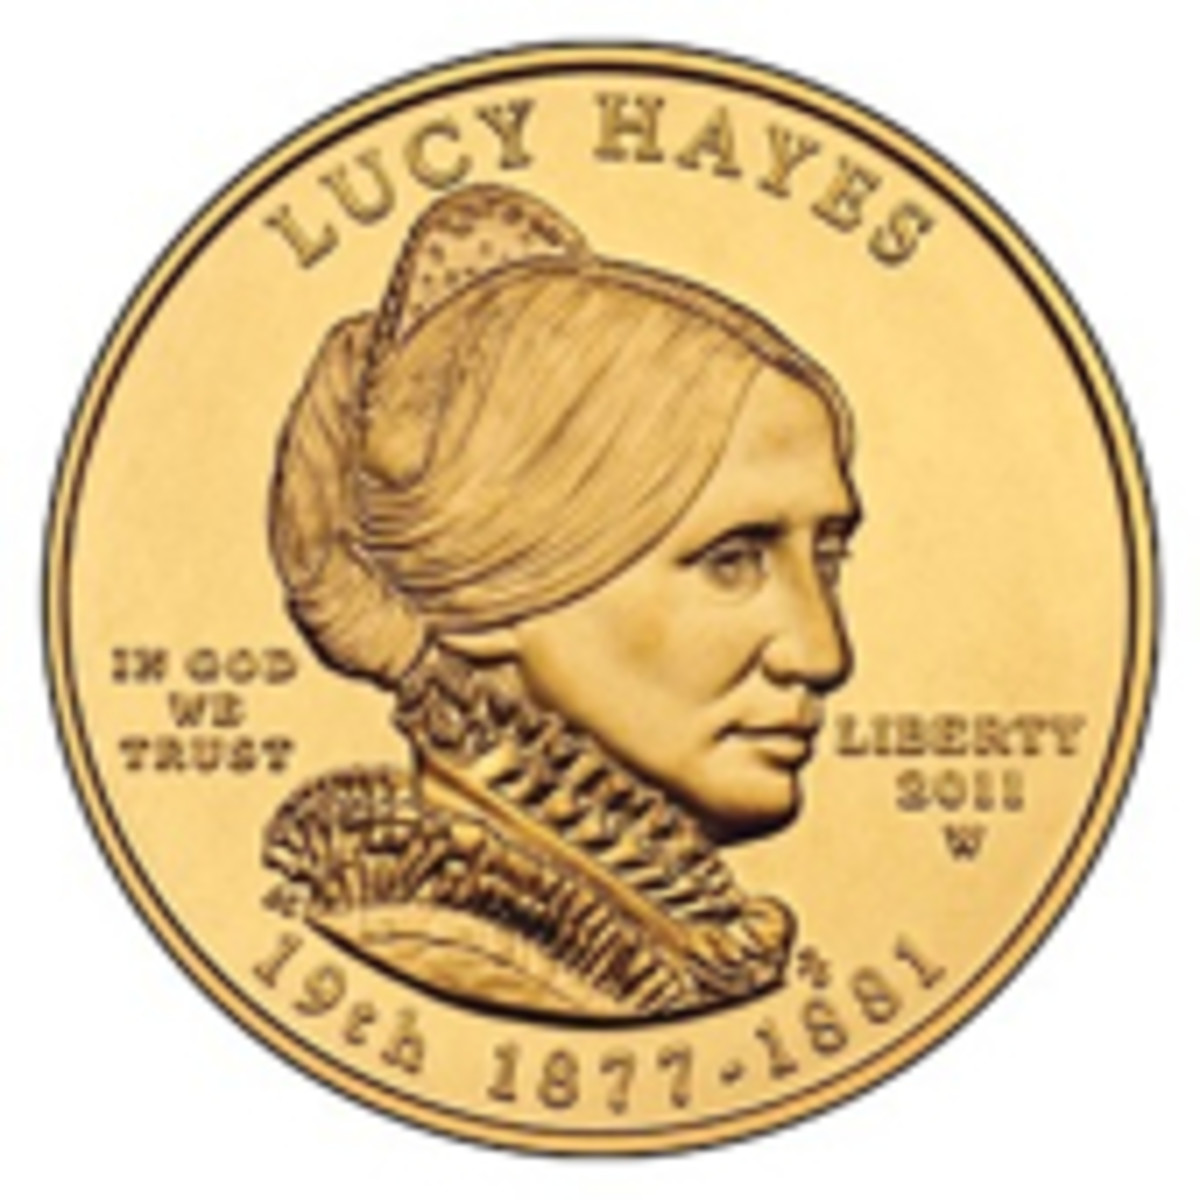 Obverse of the 2011-W Lucy Hayes First Spouse uncirculated gold coin